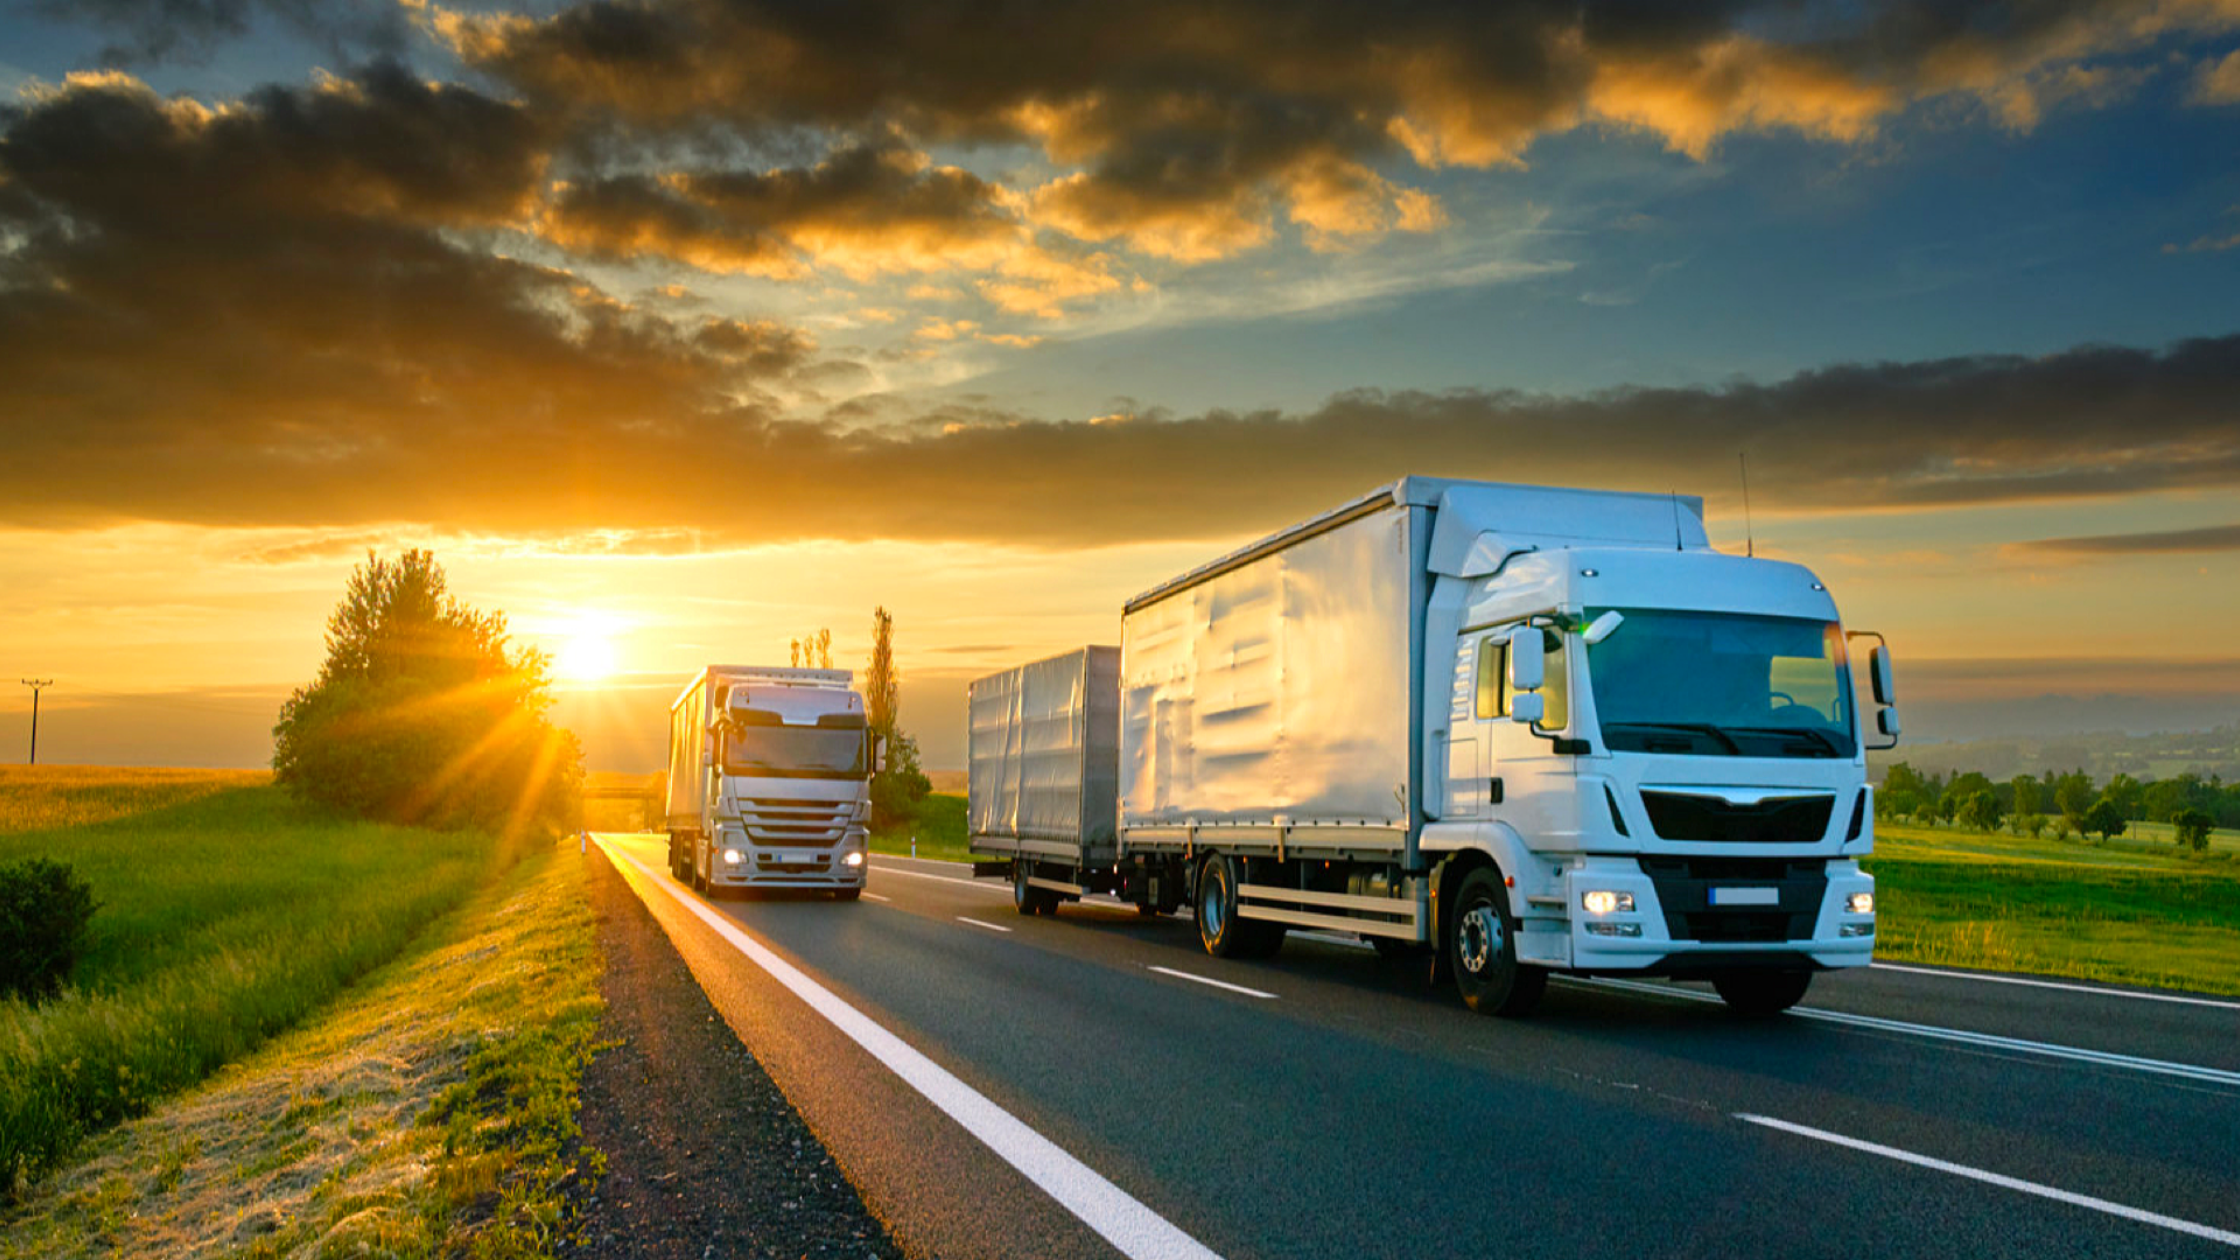 How can transport and logistics businesses cut costs?